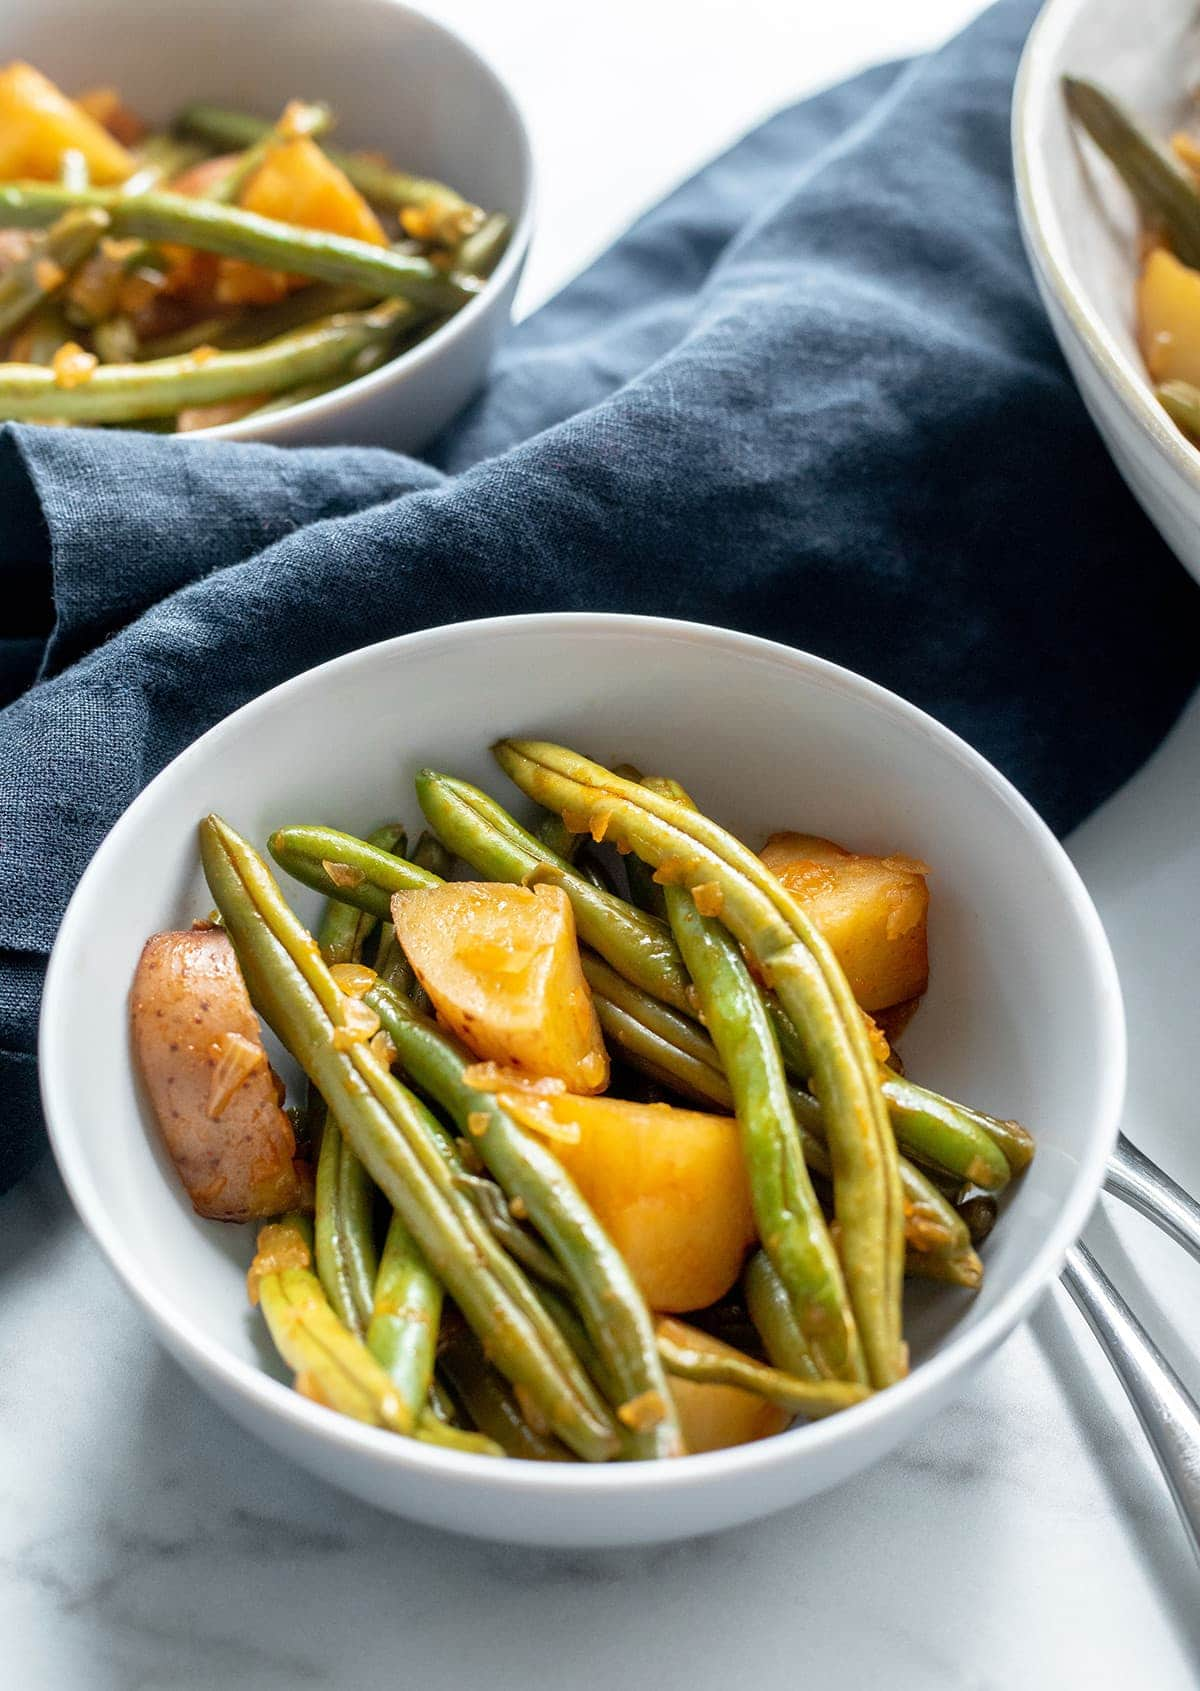 Southern Green Beans and potatoes in 3 white serving bowls on a white background with a blue napkin